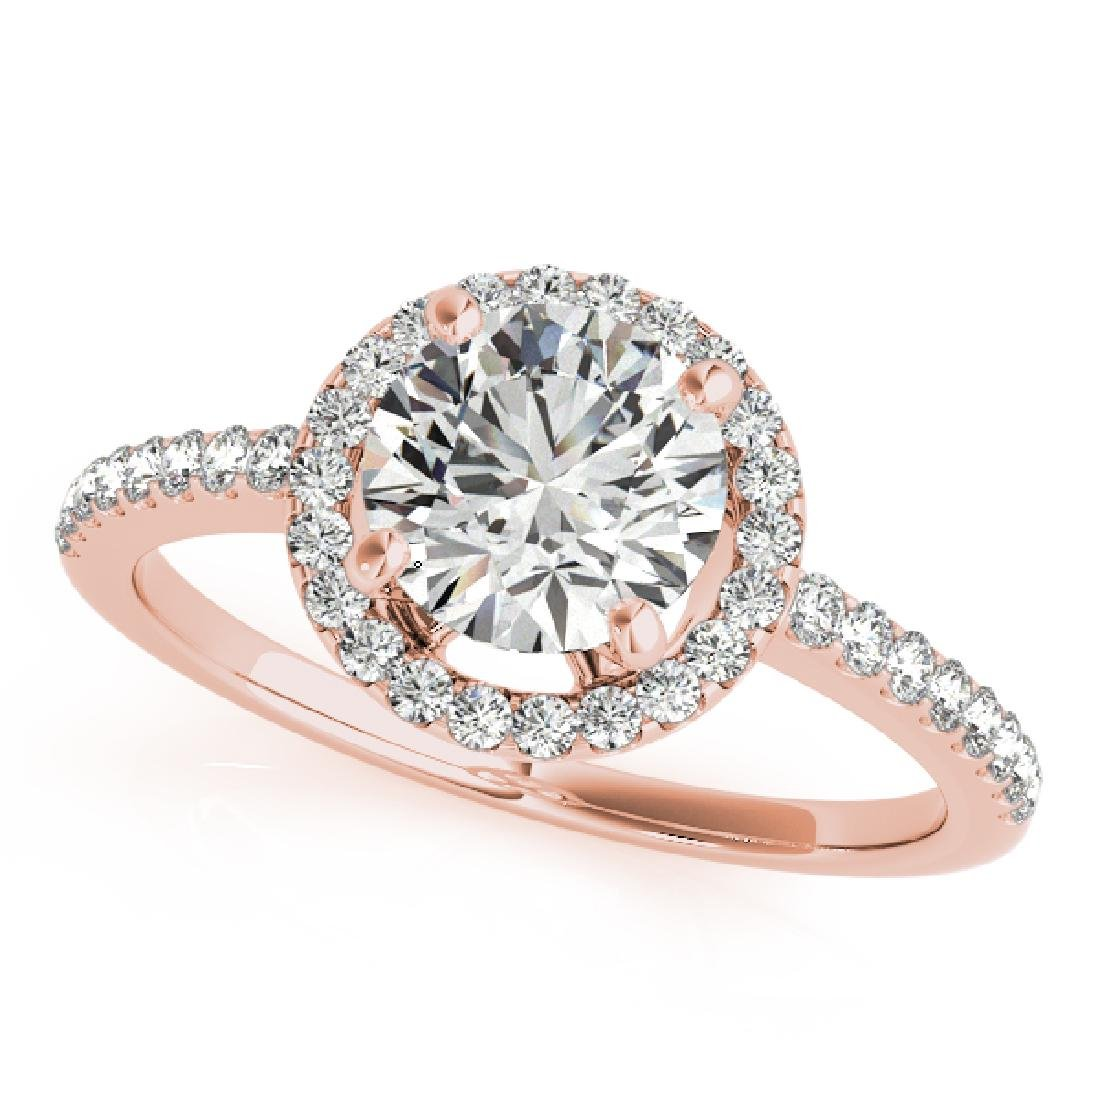 CERTIFIED 18K ROSE GOLD 1.58 CT G-H/VS-SI1 DIAMOND HALO